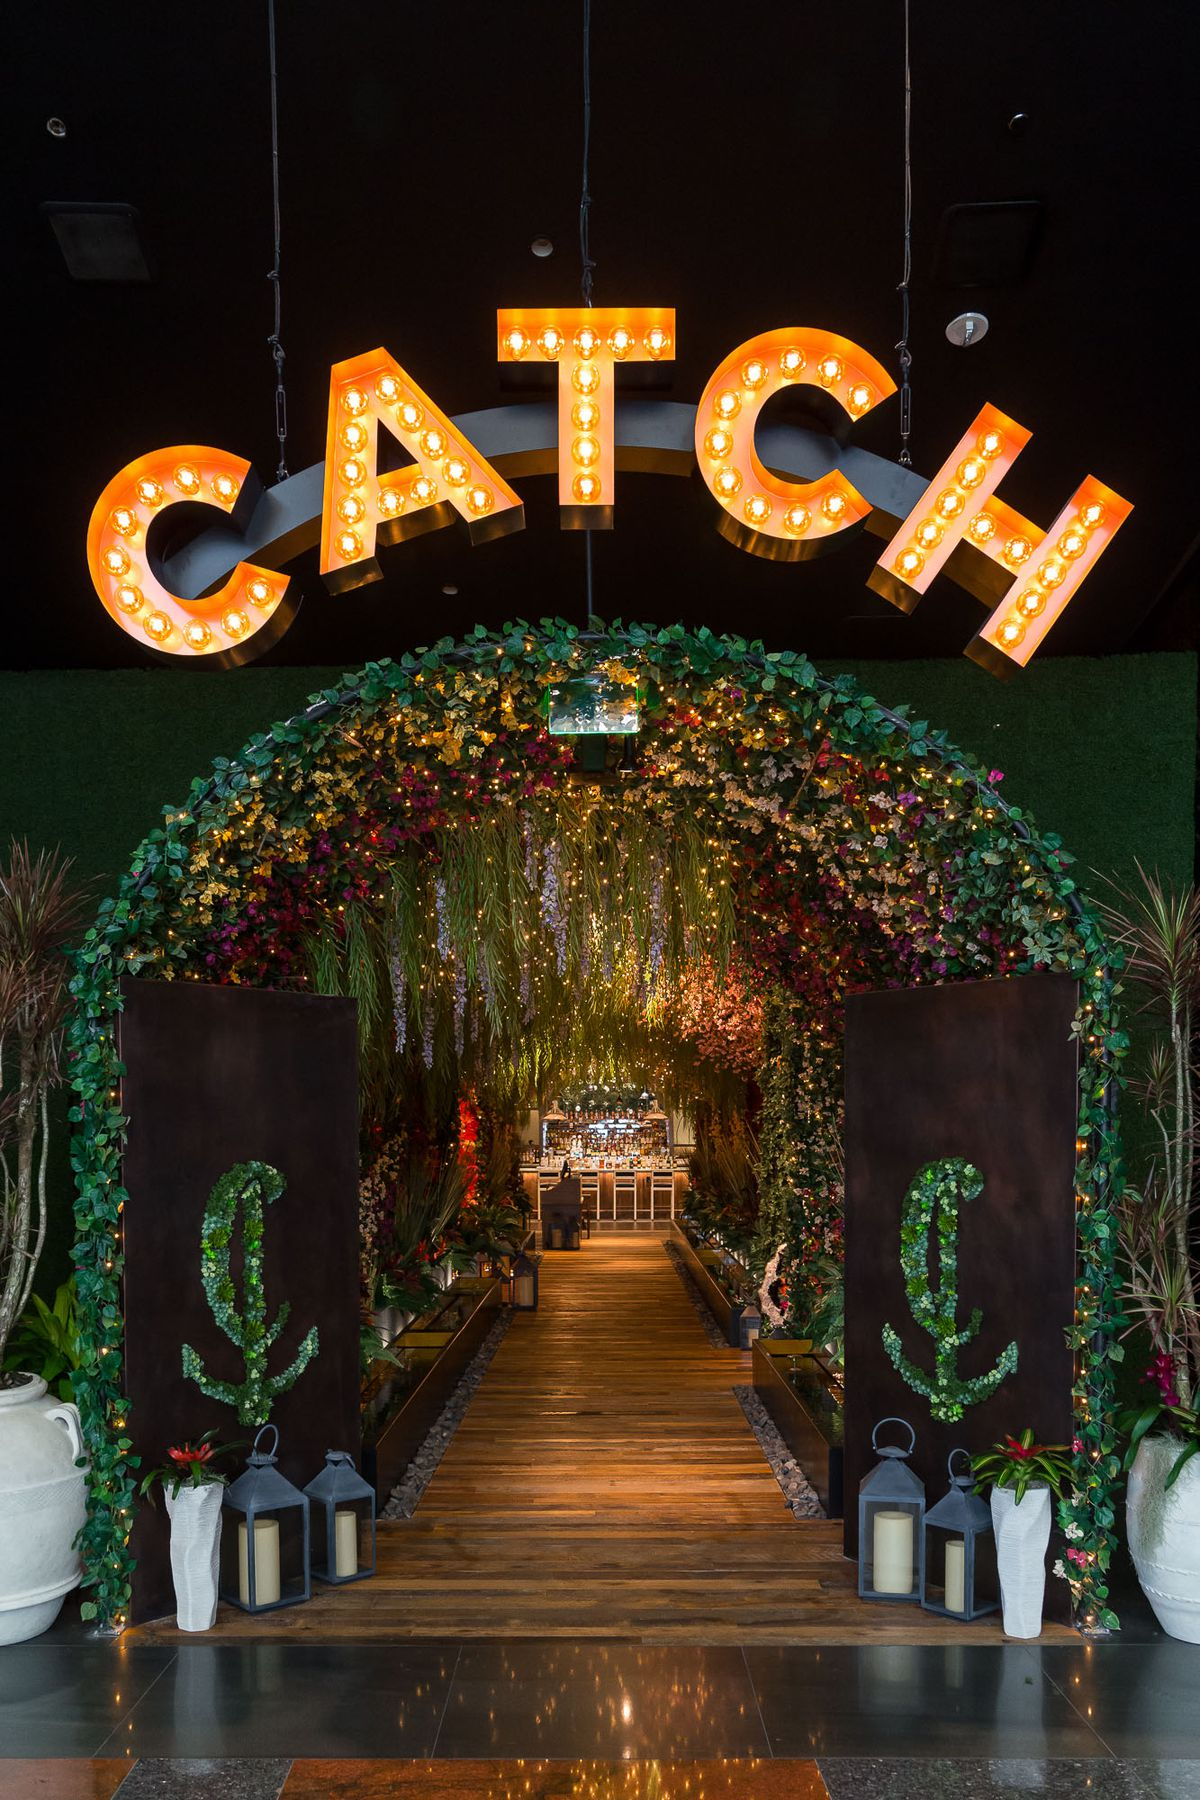 The entrance to Catch